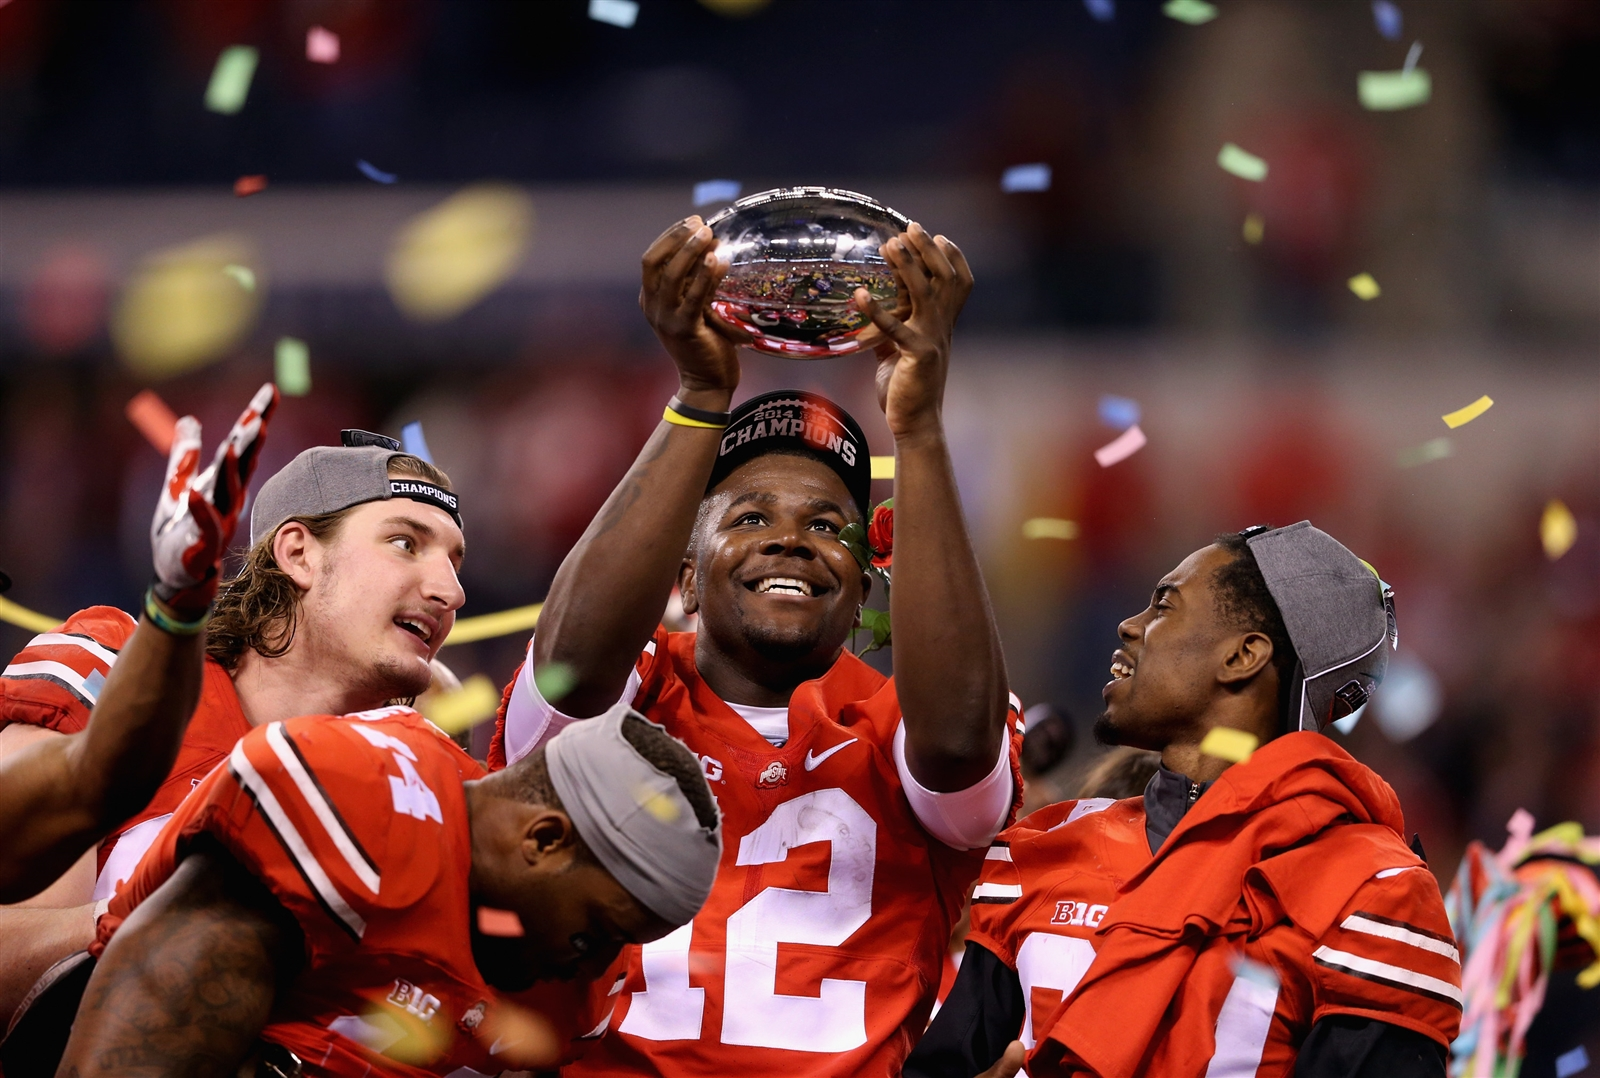 Cardale Jones, center, celebrates Ohio State's 2015 national championship. (Getty Images)